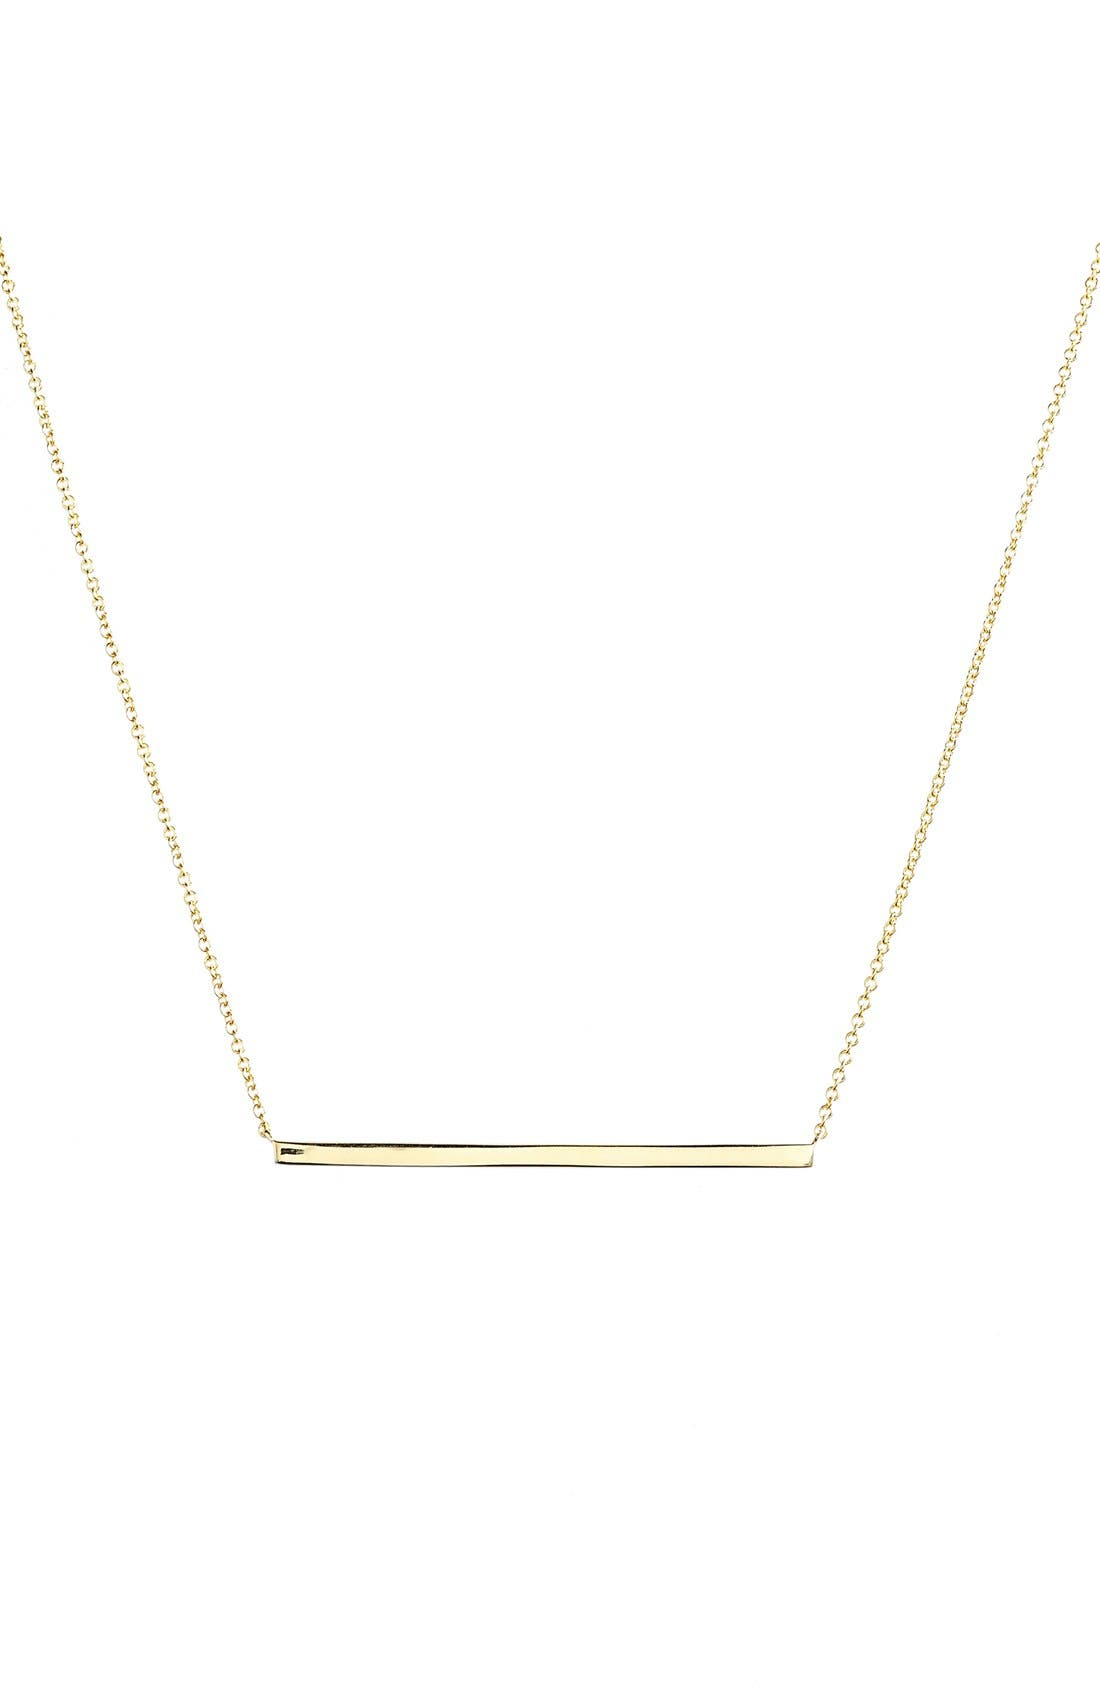 Bony Levy 14k Gold Bar Pendant Necklace (Limited Edition) (Nordstrom Exclusive)